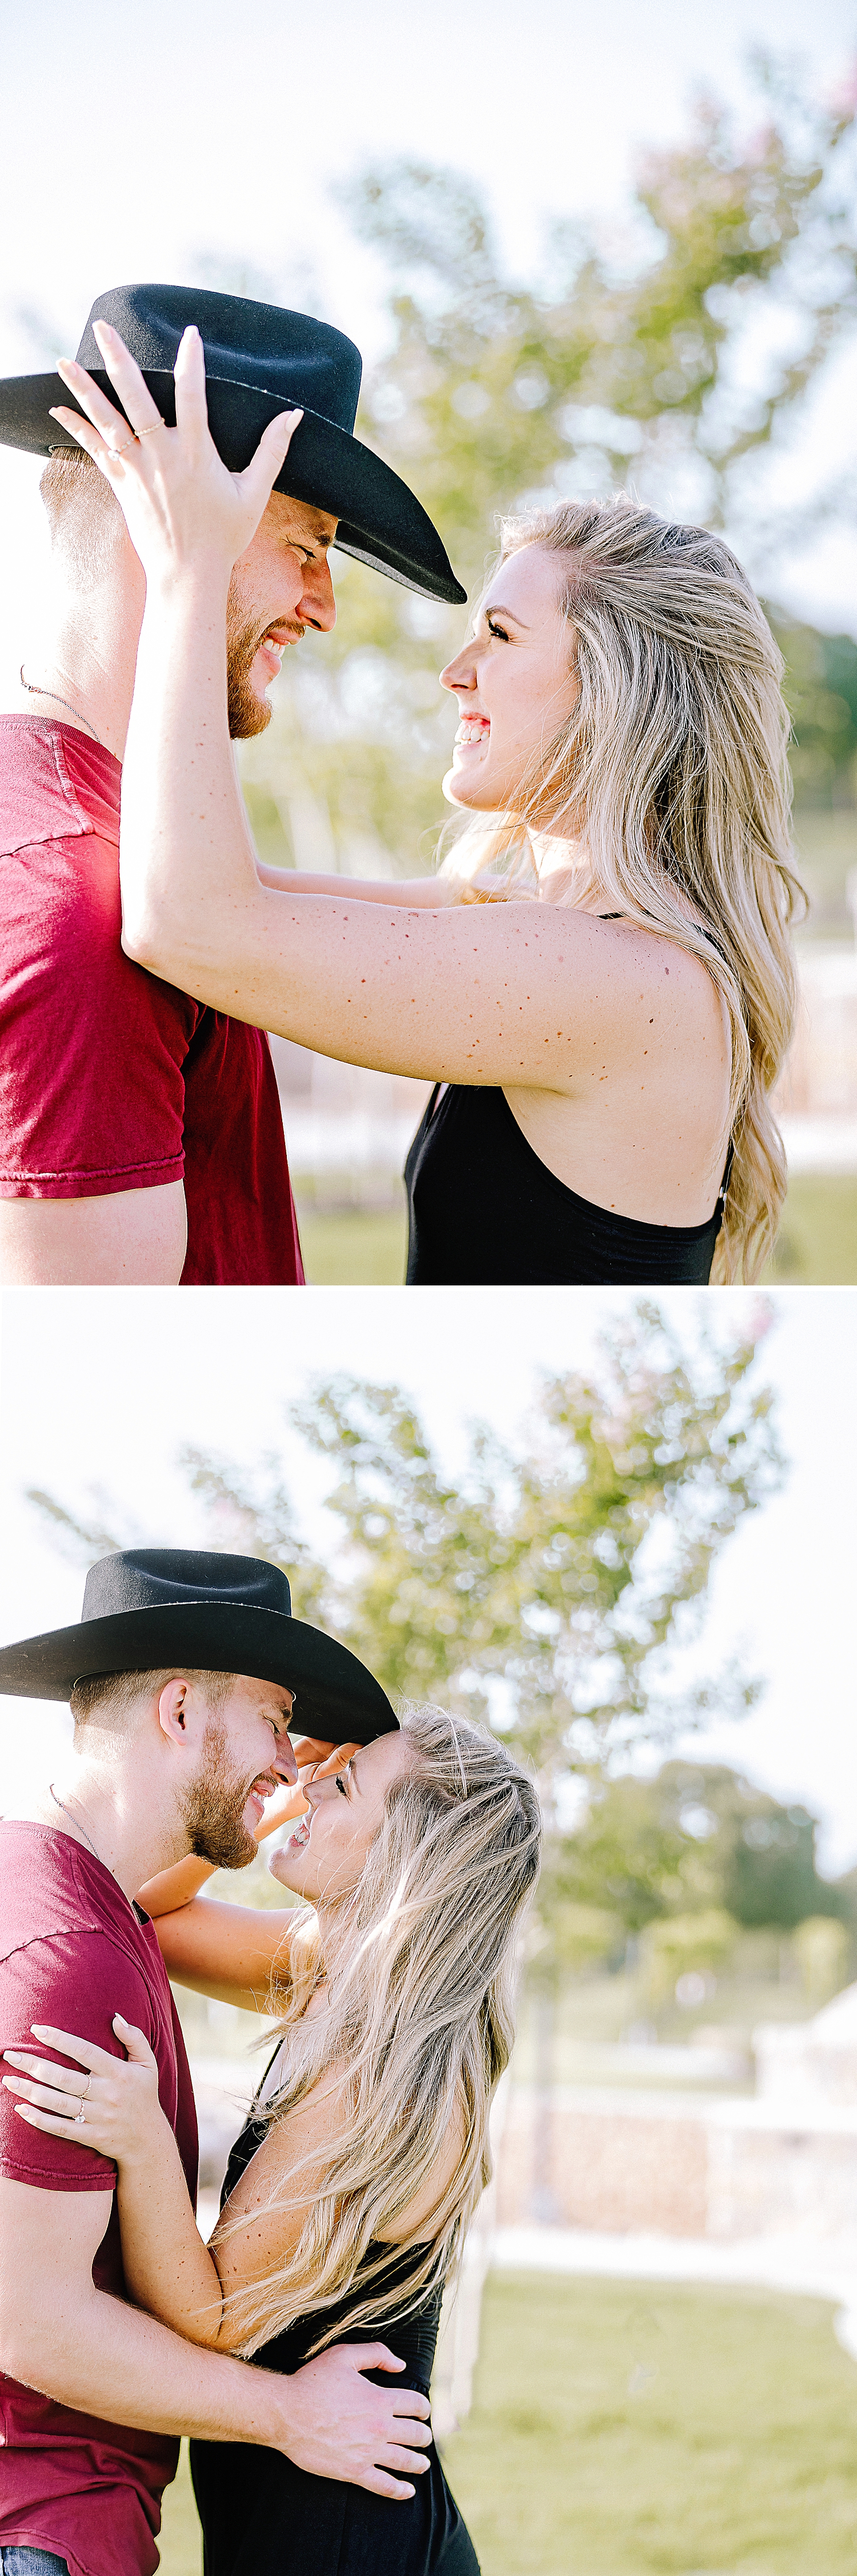 Carly-Barton-Photography-Engagement-Photos-College-Station-Texas-The-Weinberg-at-Wixon-Valley_0030.jpg